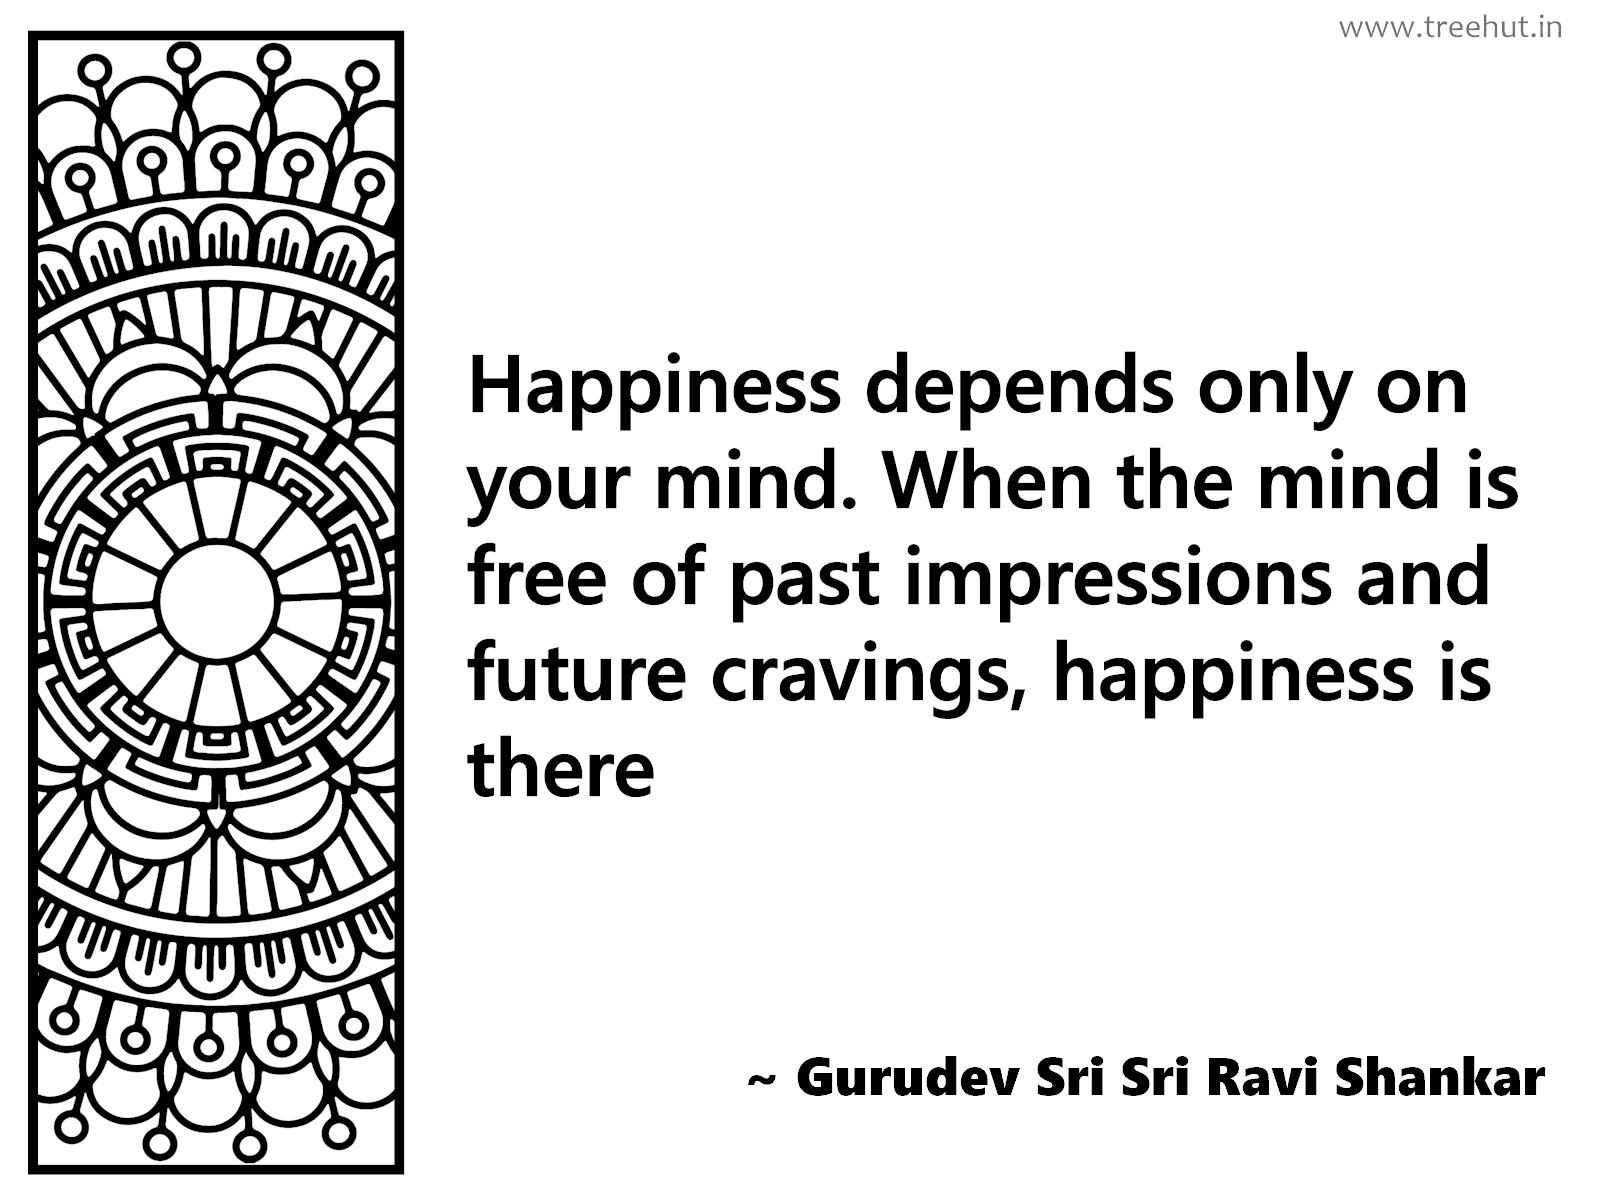 Happiness depends only on your mind. When the mind is free of past impressions and future cravings, happiness is there Inspirational Quote by Gurudev Sri Sri Ravi Shankar, coloring pages